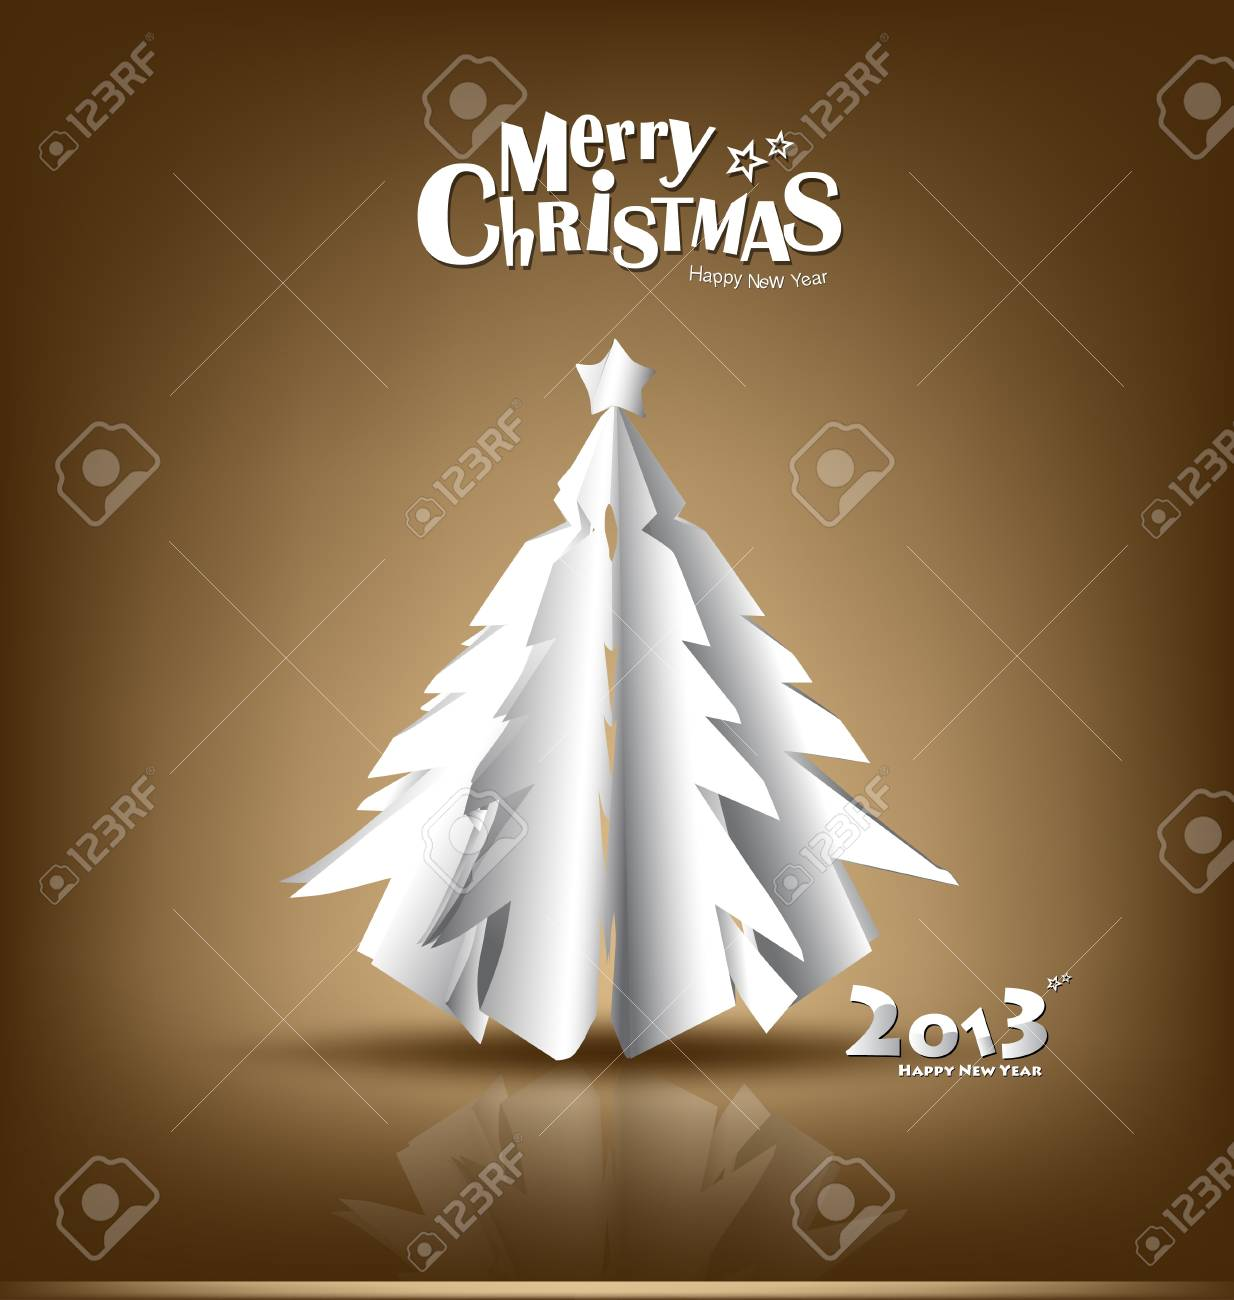 Merry Christmas greeting card with origami Christmas tree, vector illustration. Stock Vector - 16767949